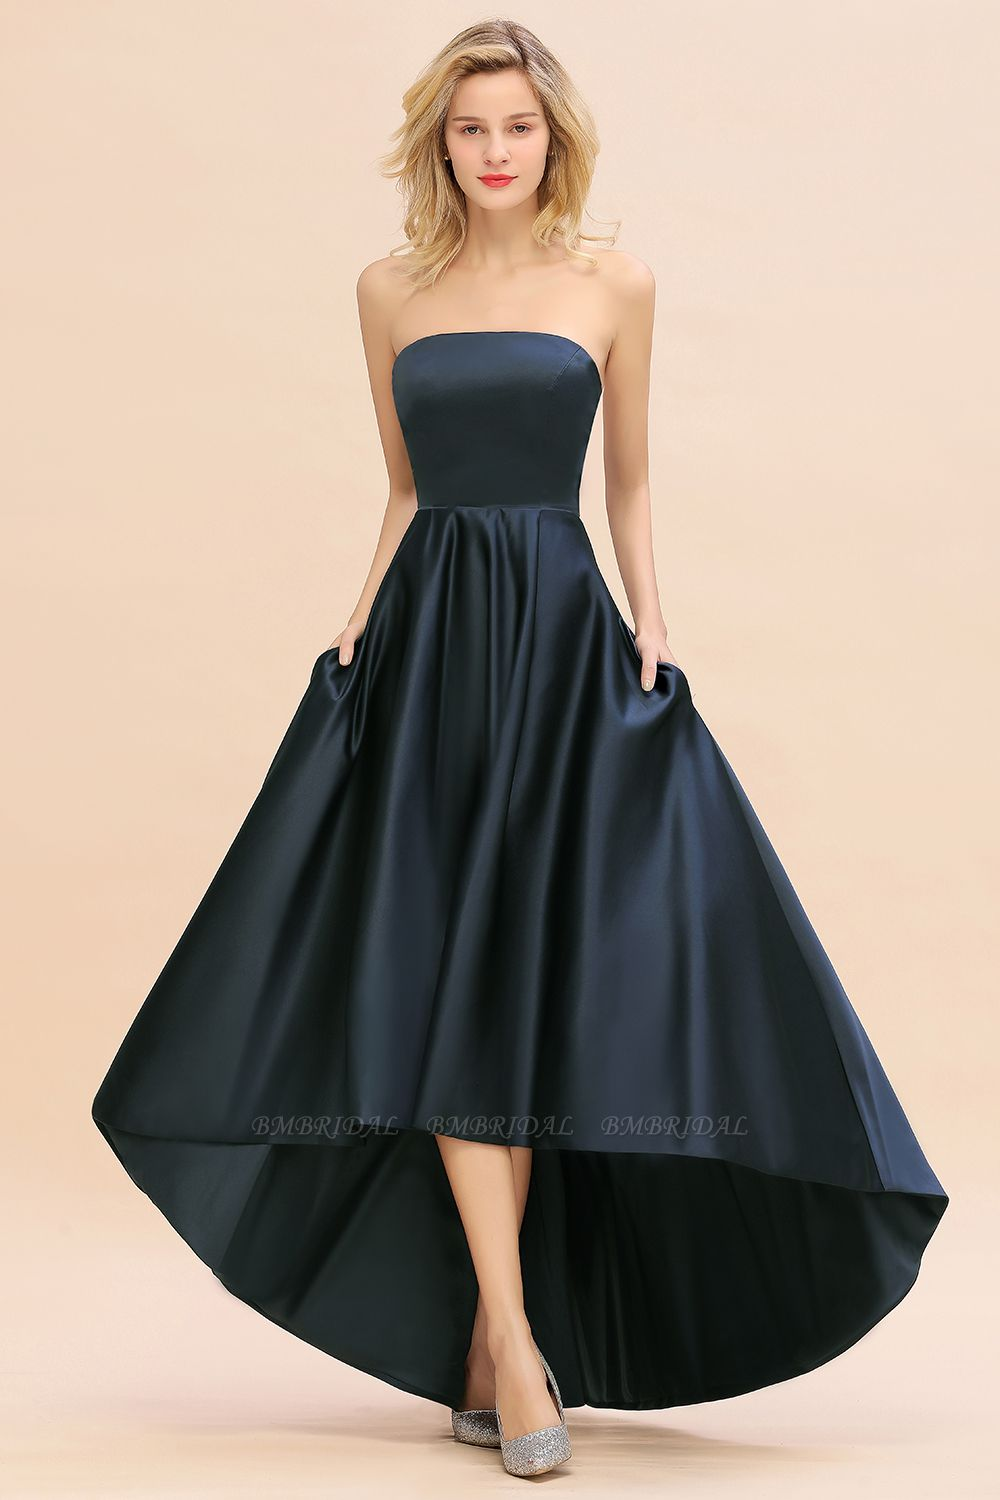 BMbridal Affordable Hi-Lo Strapless Satin Bridesmaid dresses Online